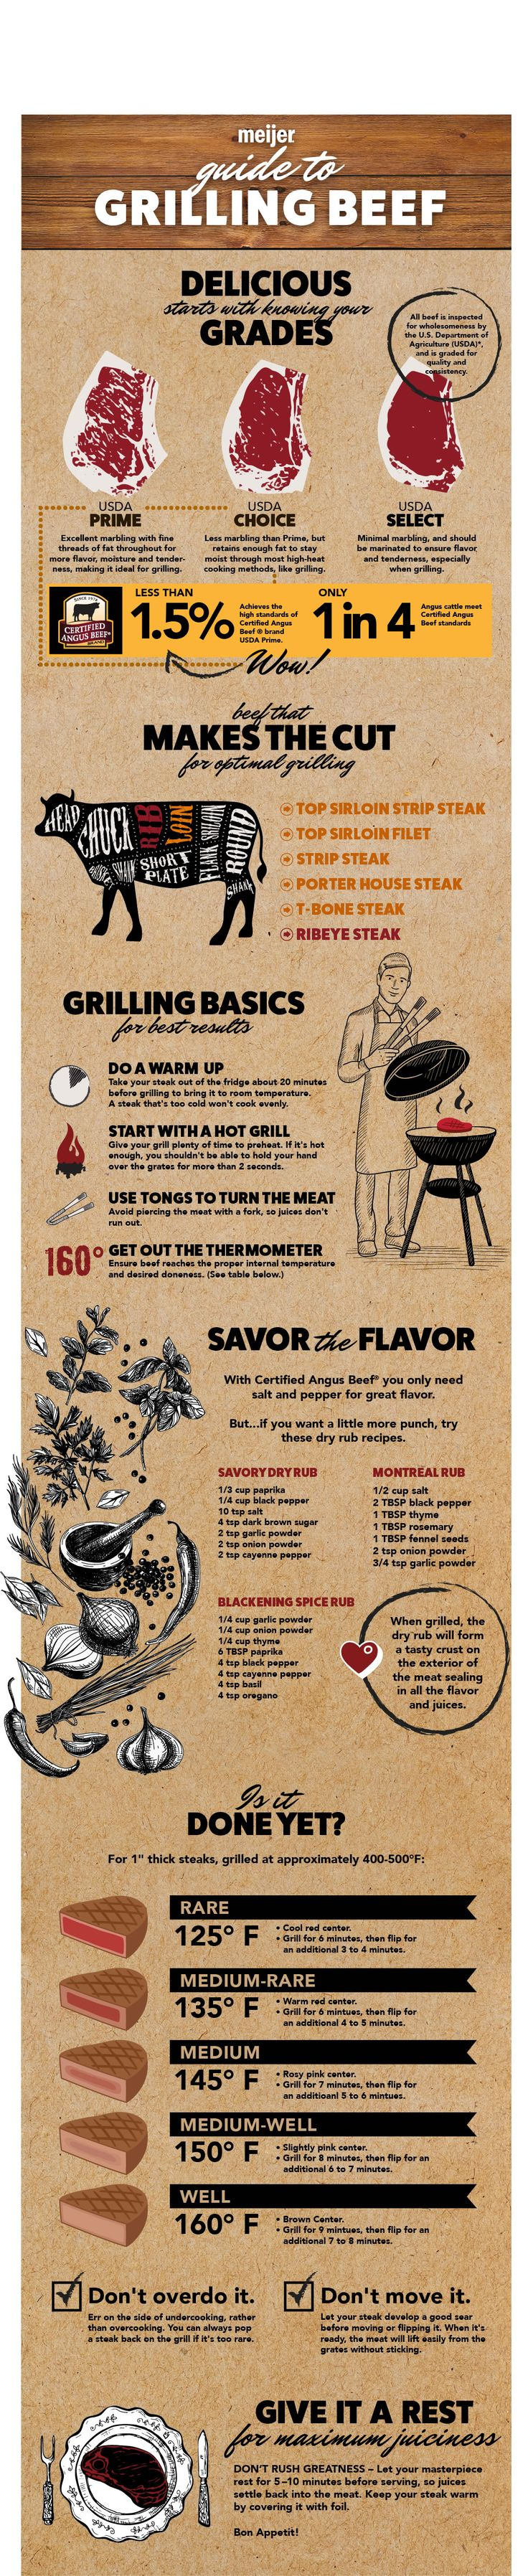 Grill up the perfect steak, every time No more charred, tough or undercooked steaks! Learn how to select the best cuts for the grill, season with a kick, and exactly how to prepare that seemingly impossible, perfect grilled steak. From rare to well done, you really can get it right, every time!